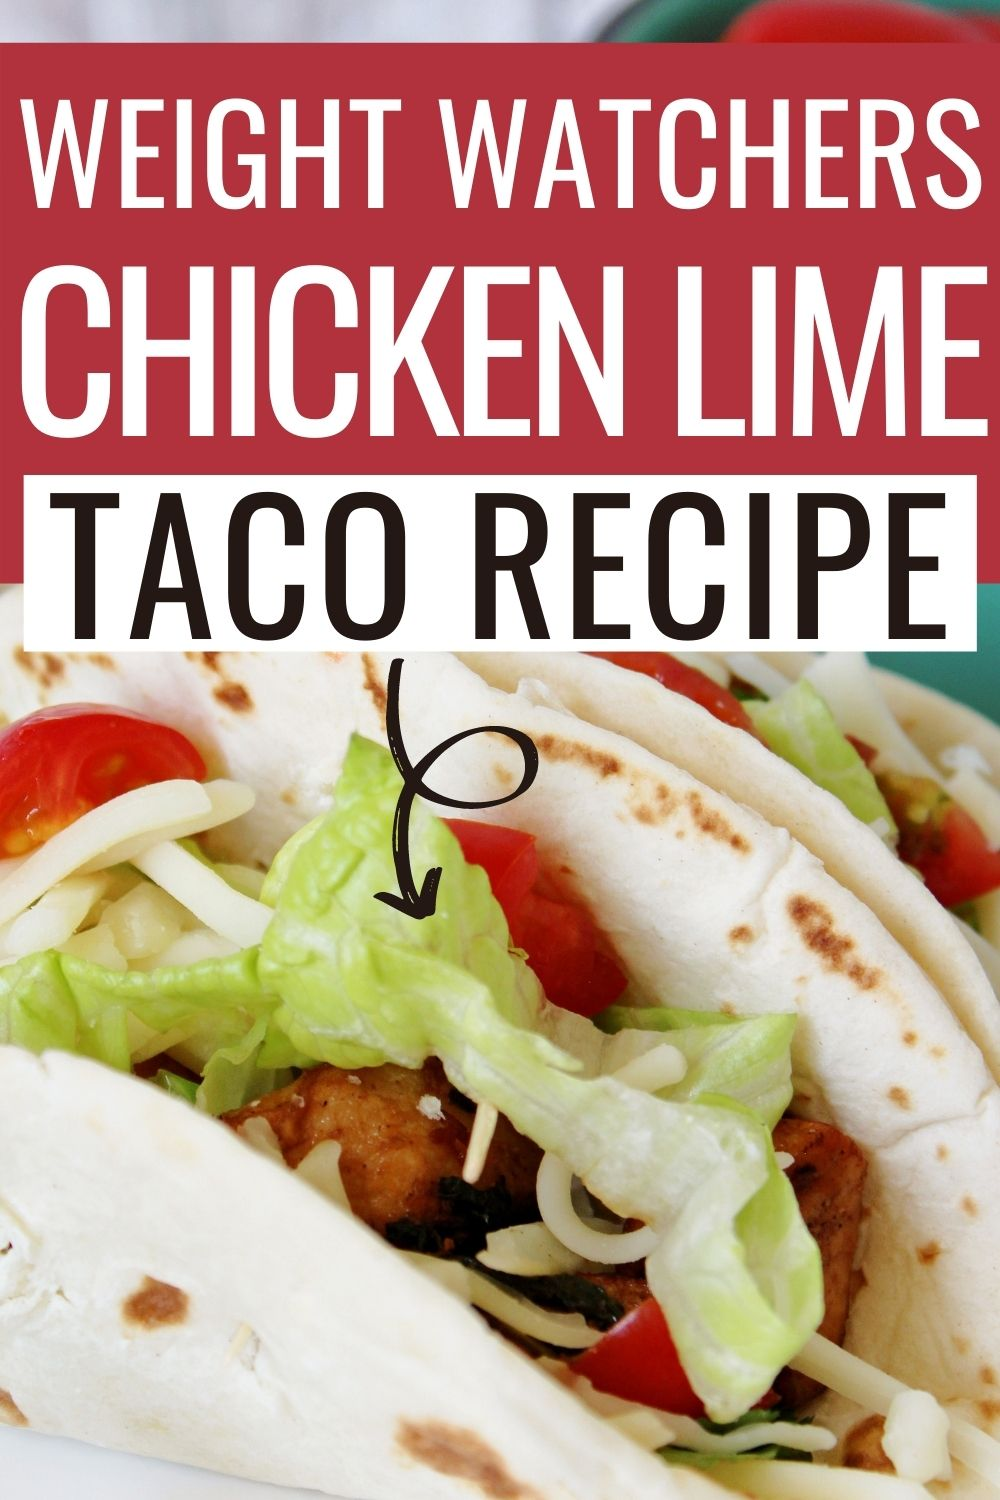 Pin showing the finished Weight Watchers chicken tacos ready to eat with title across the top.